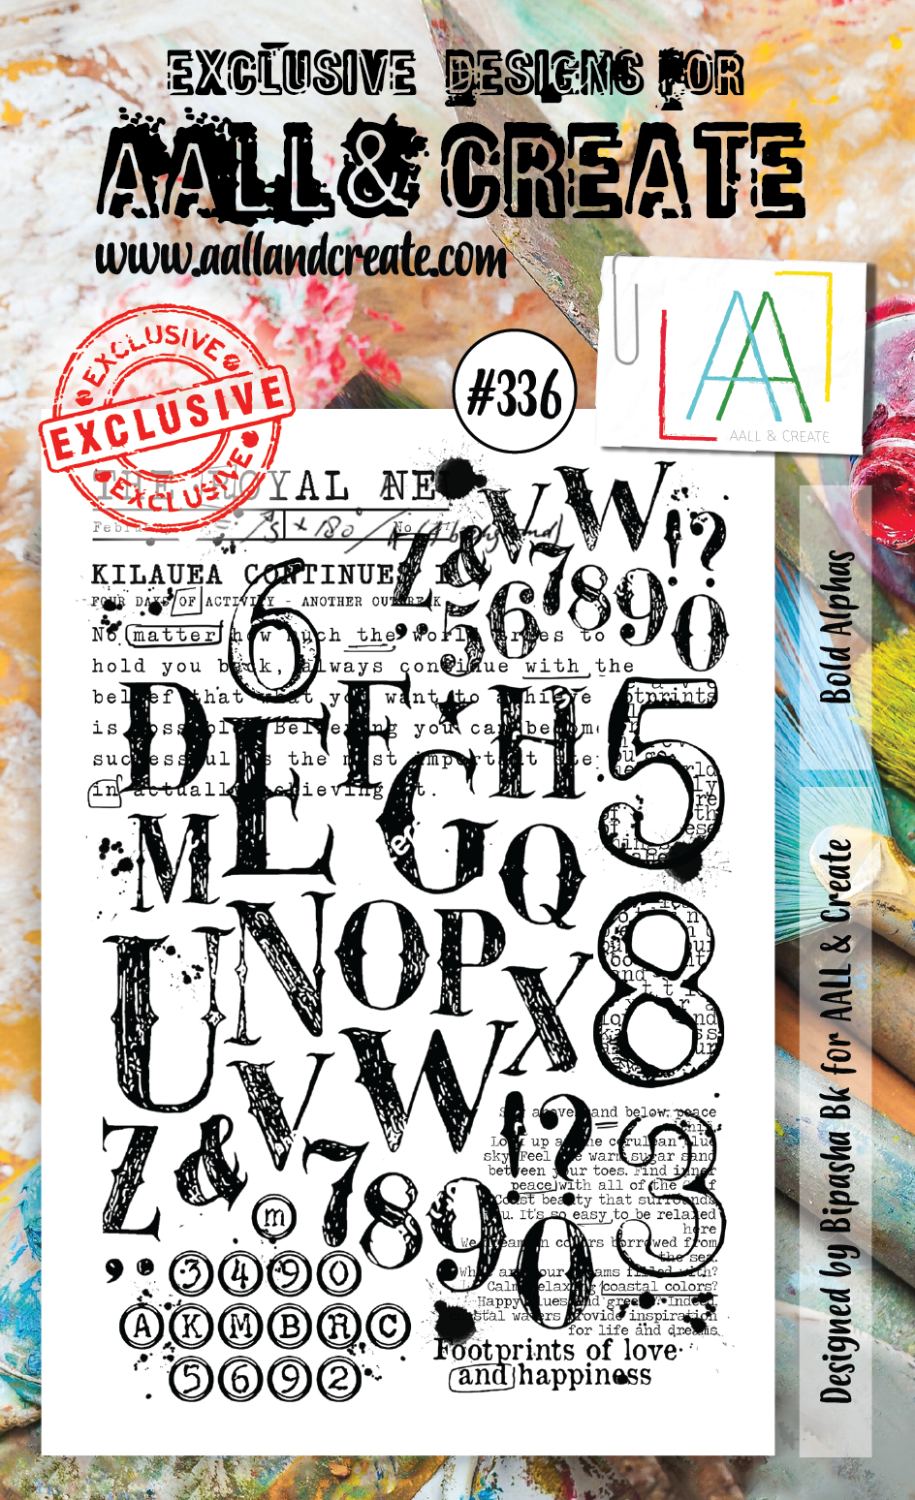 Bold Alphas #336 - A6 STAMPS - AAll&create